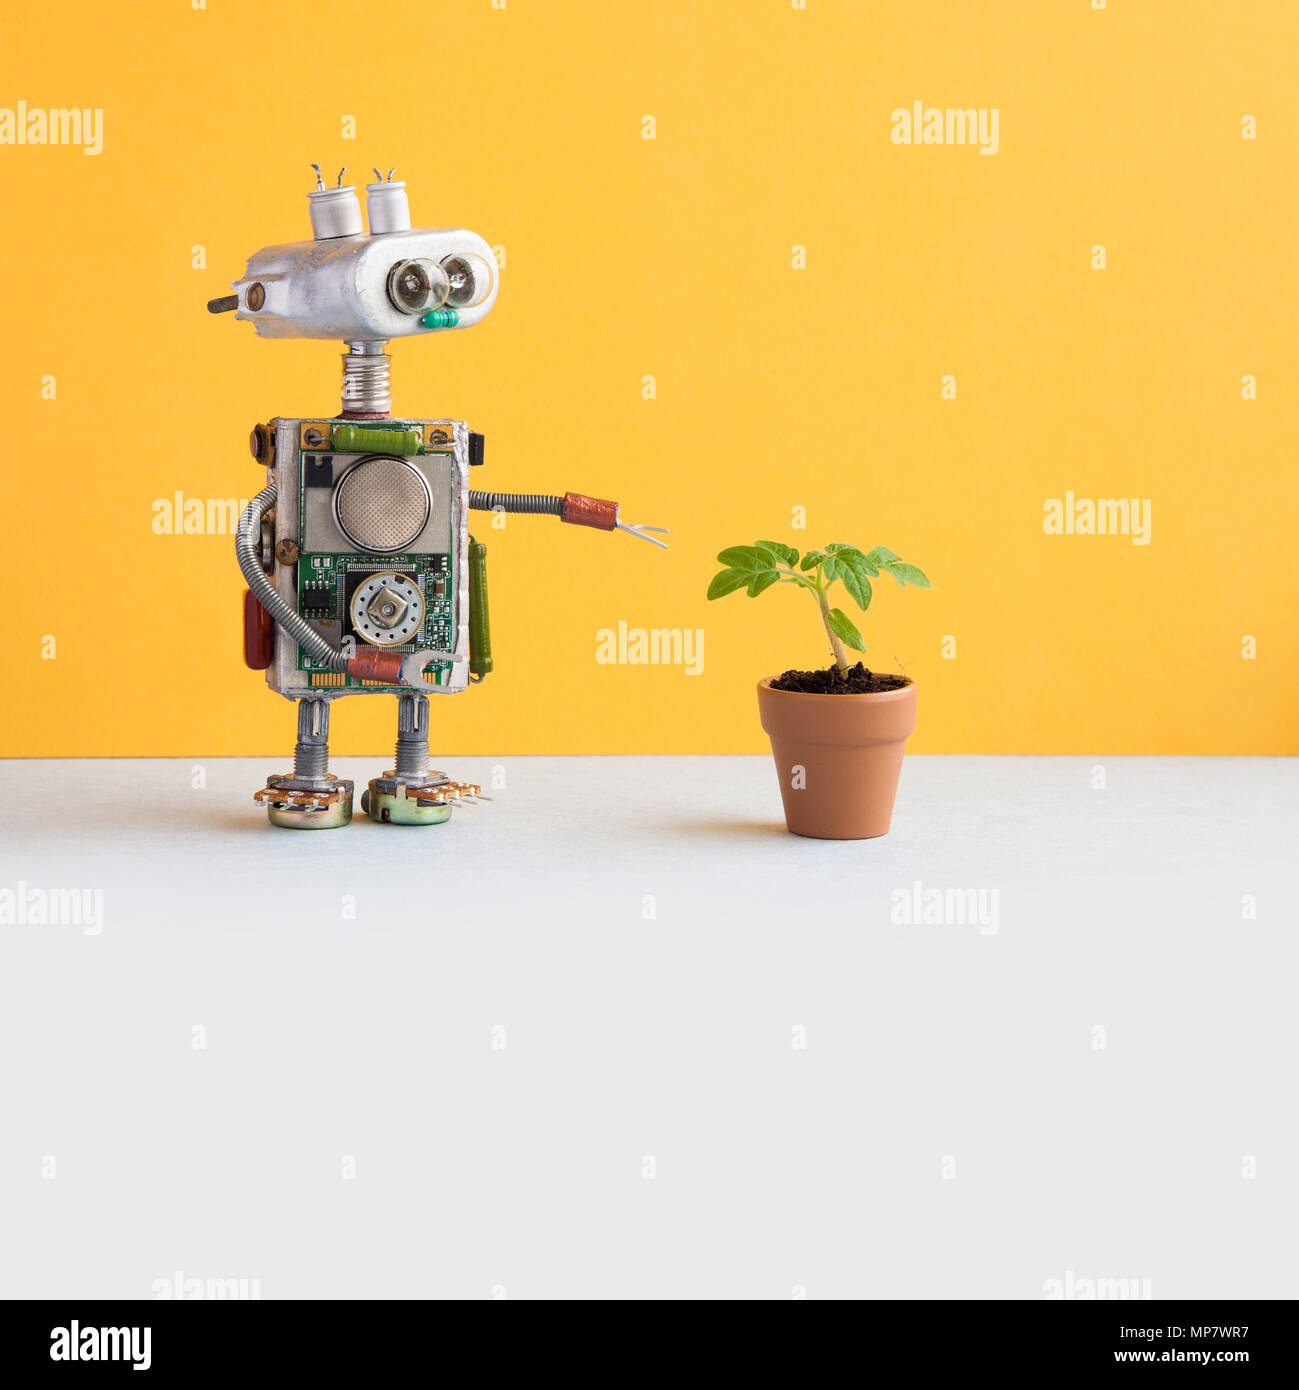 Biotechnology concept. Robot researcher points his hand at the green sprout in a clay pot. Yellow wall, white floor background. Copy space - Stock Image